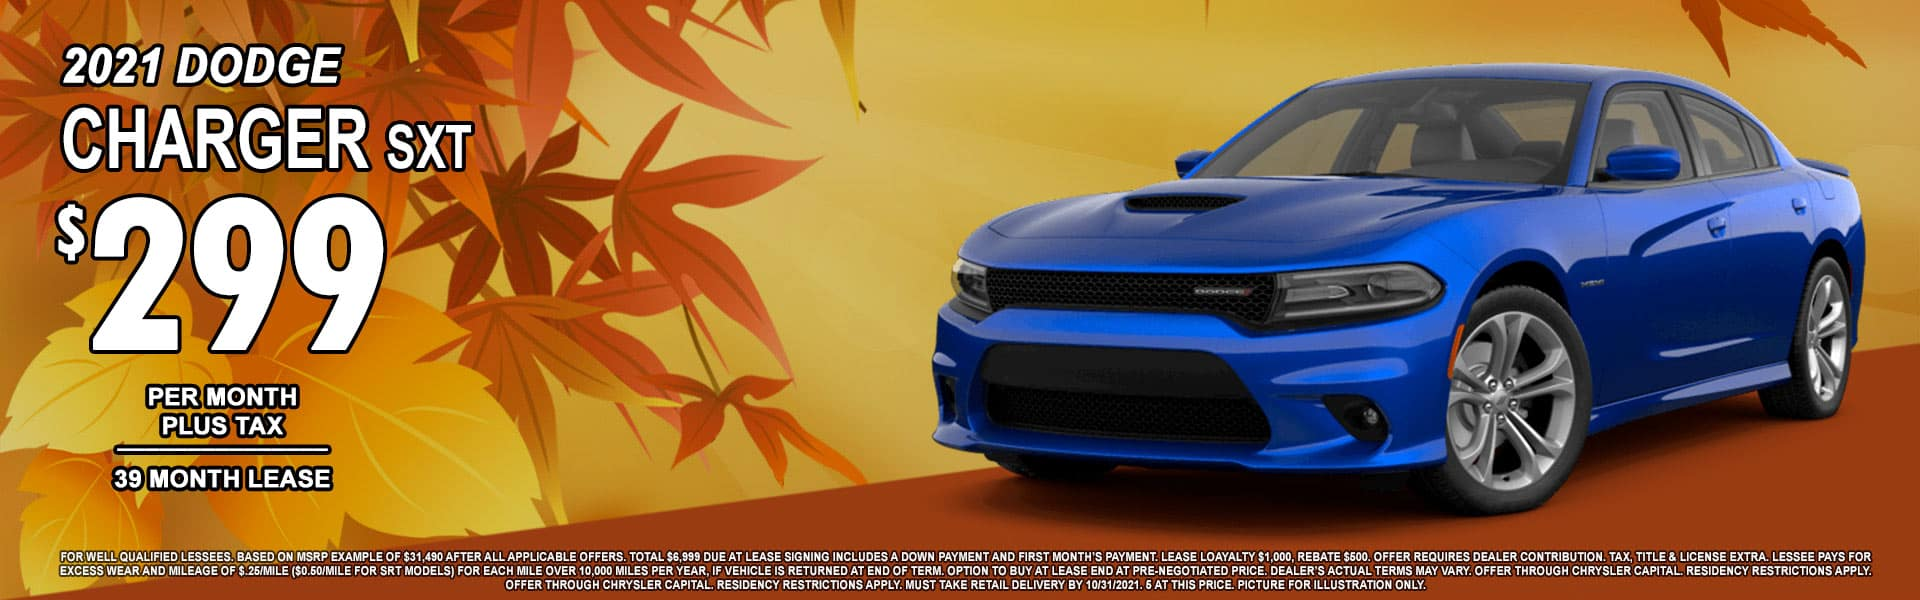 charger_oct21